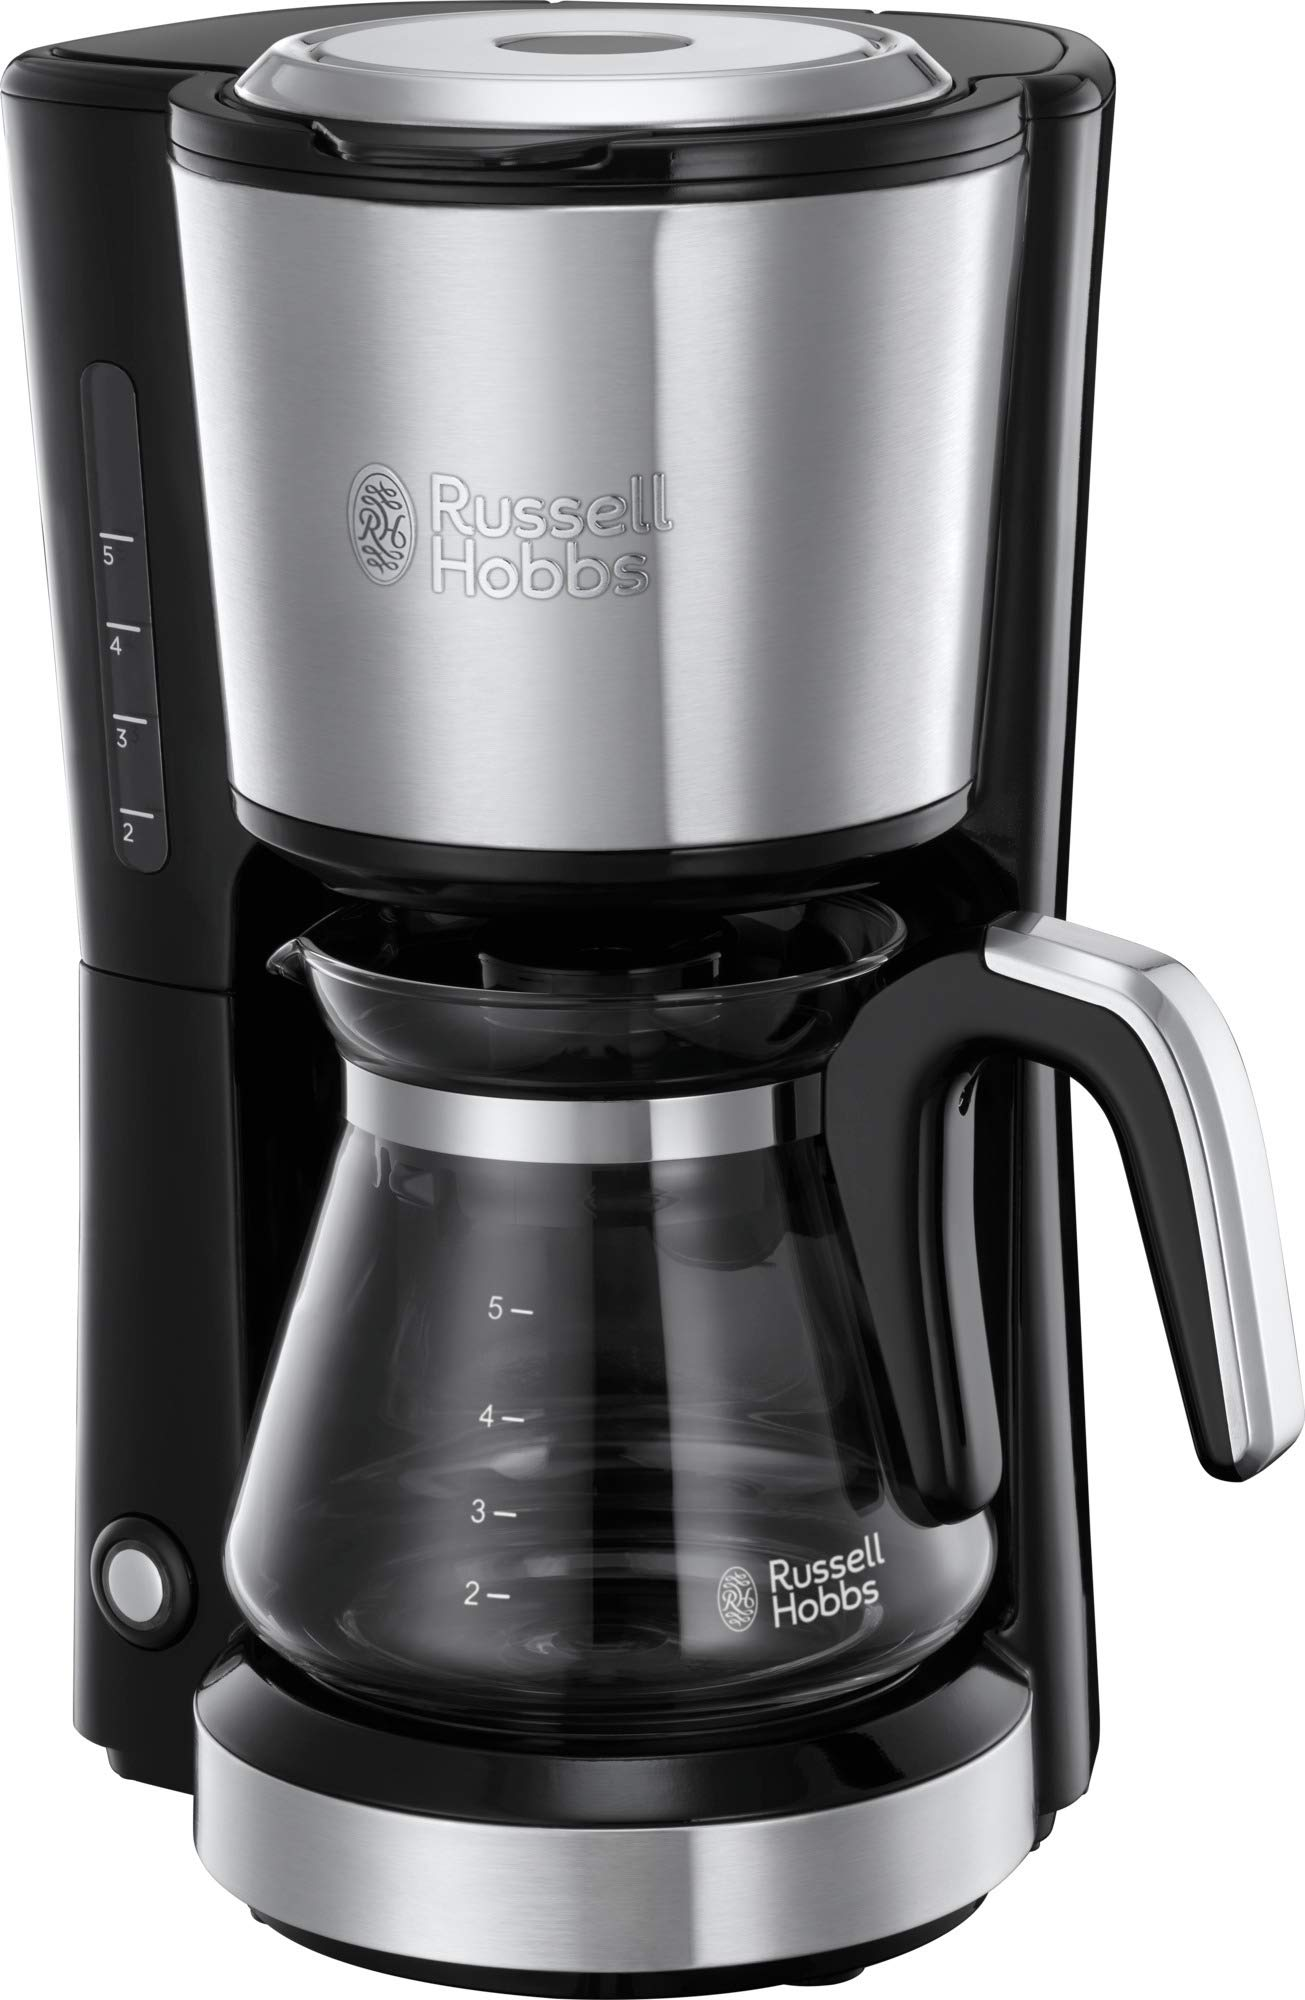 Russell Hobbs 24210 Compact Coffee Machine, Stainless Steel Filter Coffee Maker with 7 Minute Brew Time, 650 W